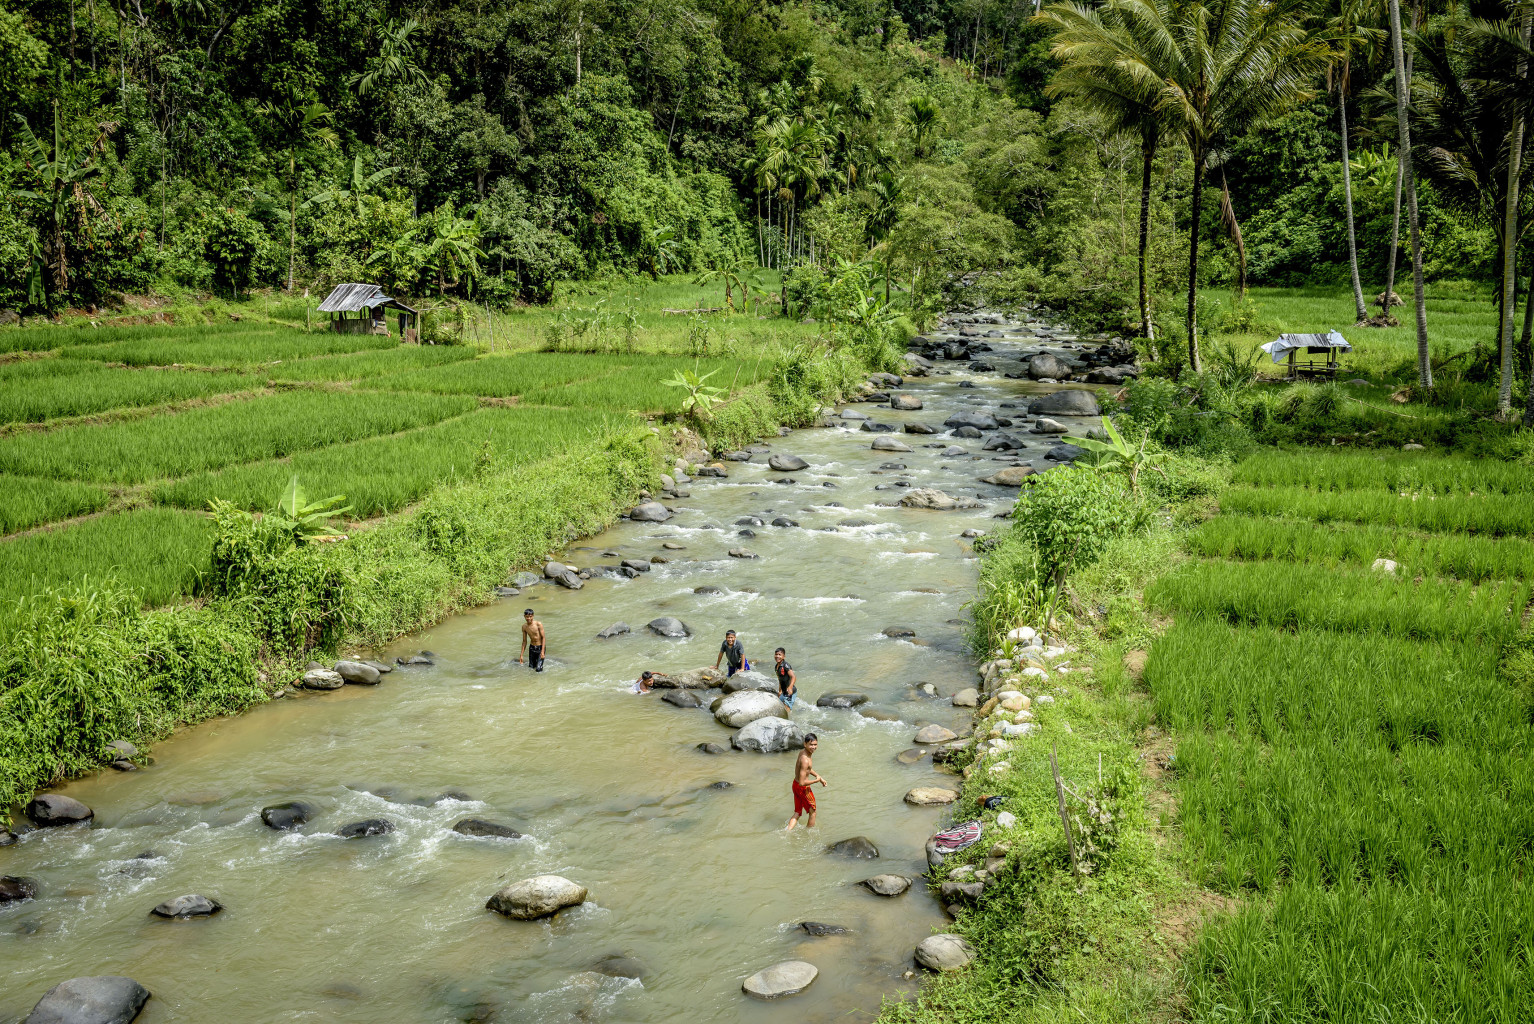 Aek Mais River flows down from the Batang Gadis watershed in Mandailing Natal, North Sumatra.